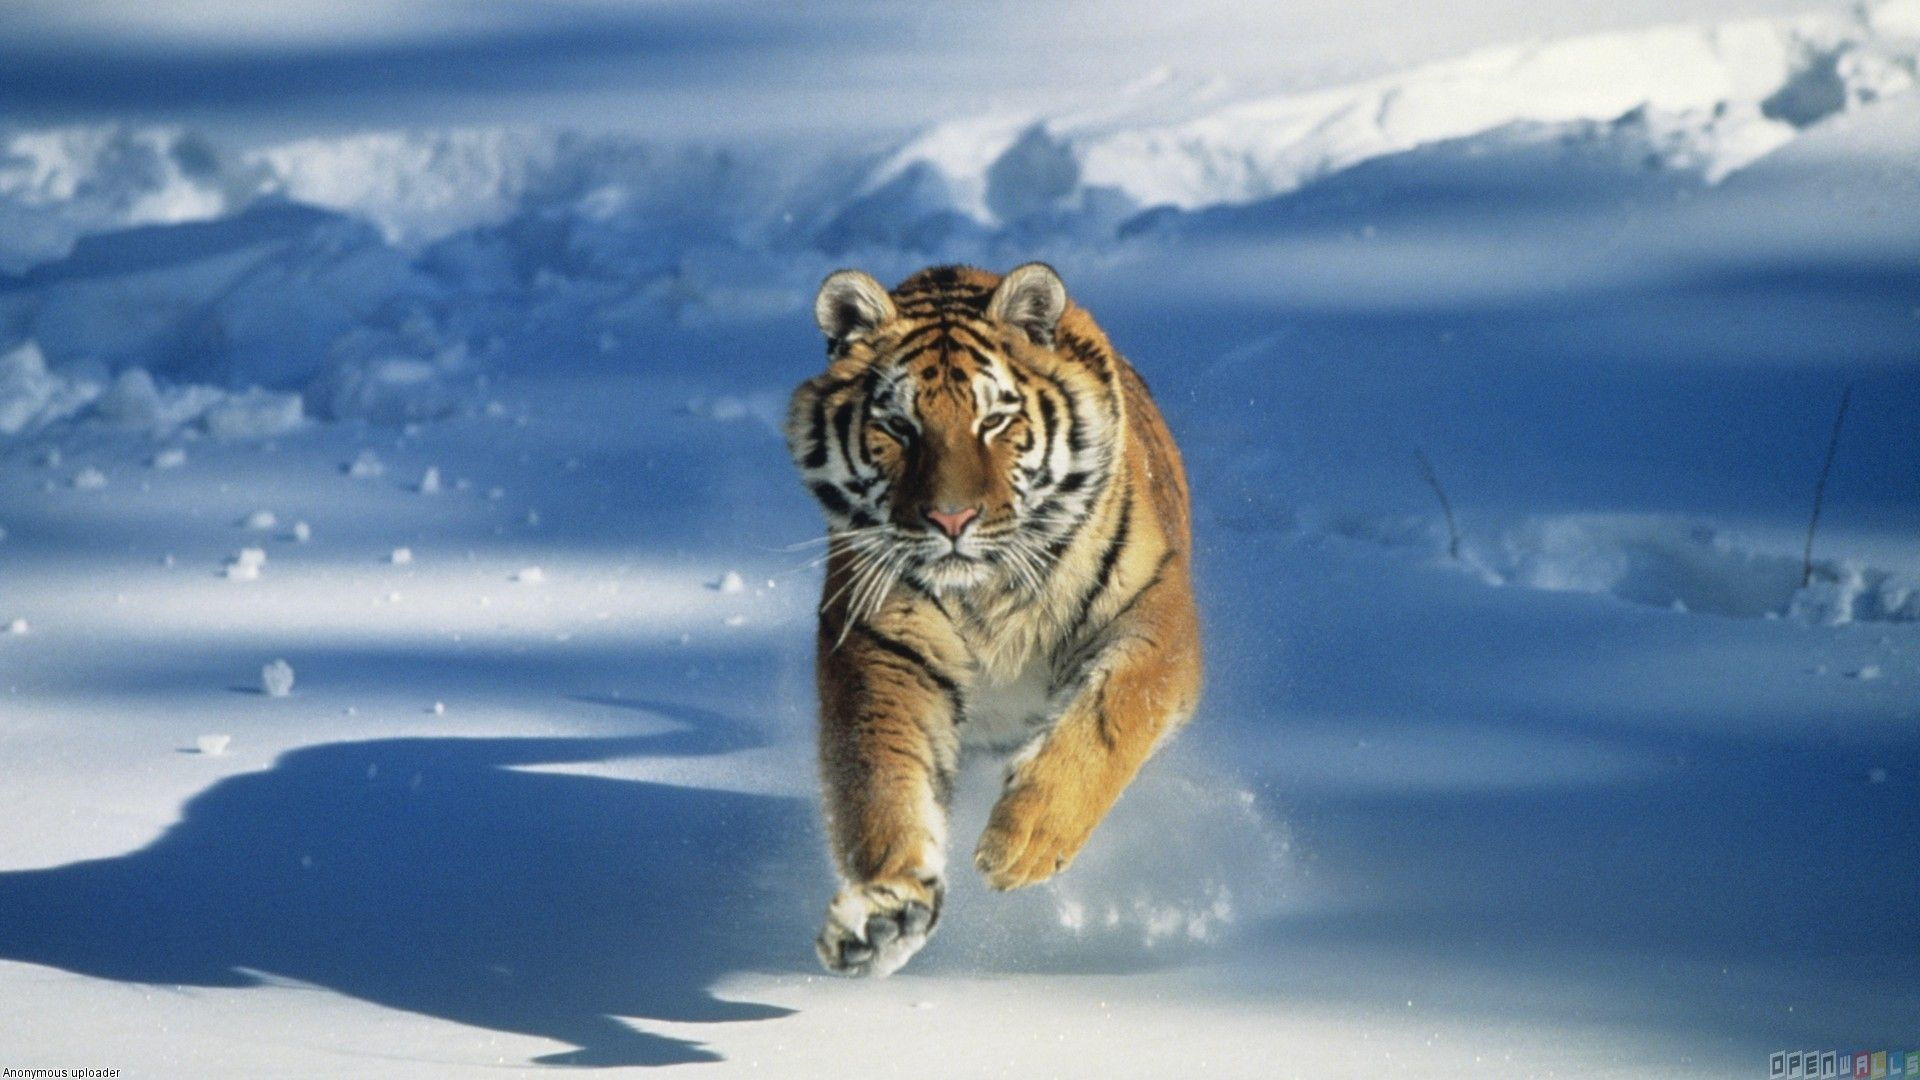 Snow Tiger Wallpapers, PC Snow Tiger Wallpapers Most Beautiful ...